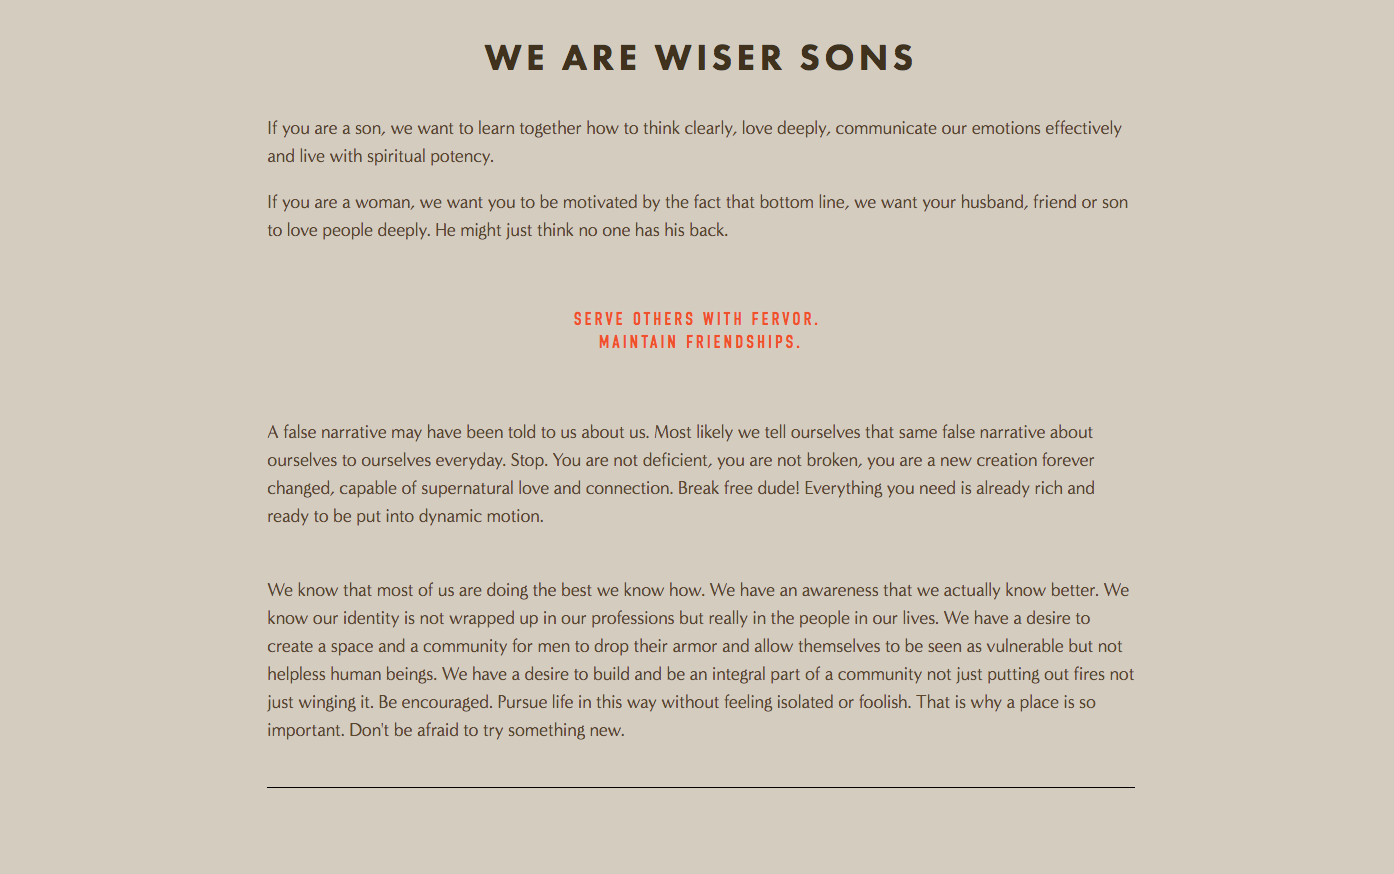 Wiser Sons Name Brand and Copy 4.png